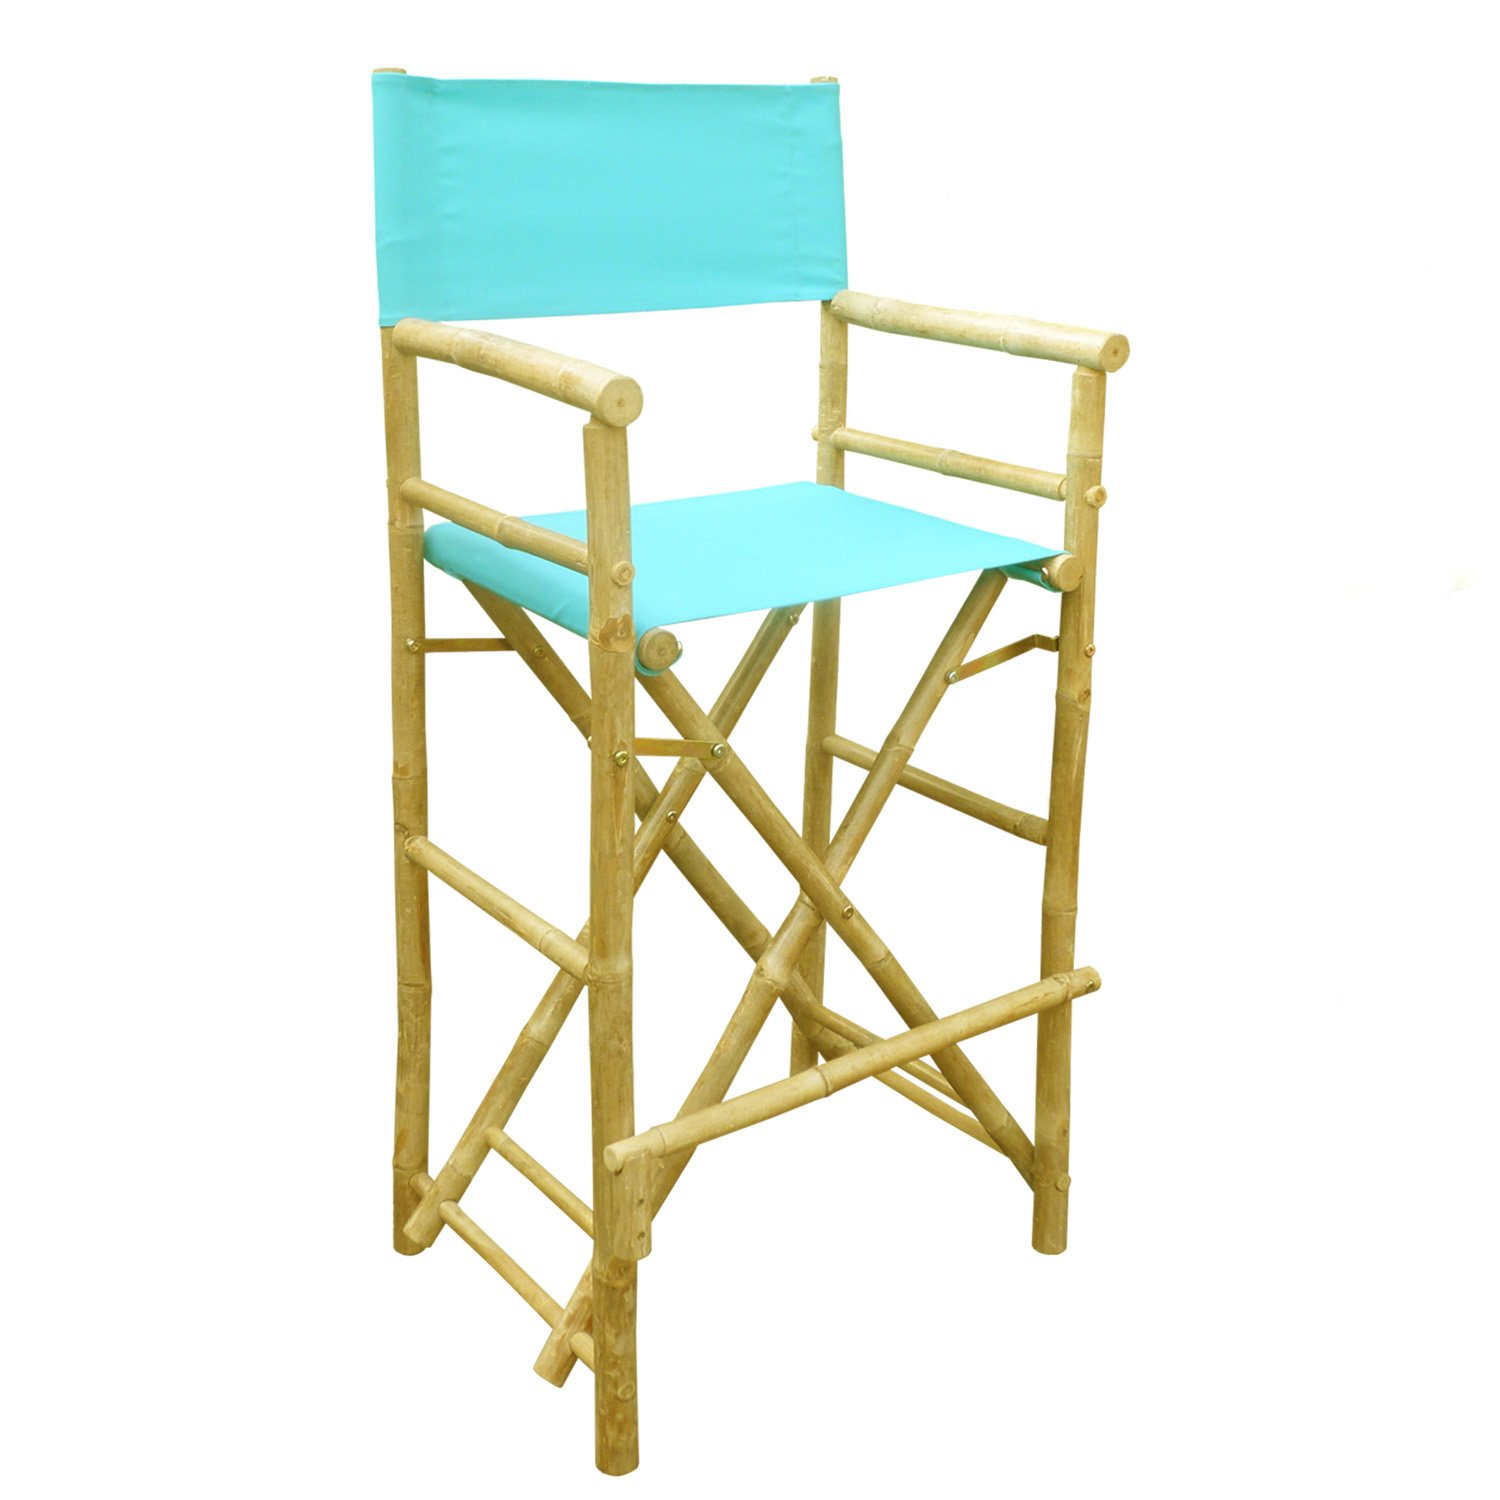 Zew Hand Crafted Tall Foldable Bamboo Director's Chair with Treated Comfortable Canvas, Set of 2 Bamboo Folding Chairs, Aqua by Zero Emission World